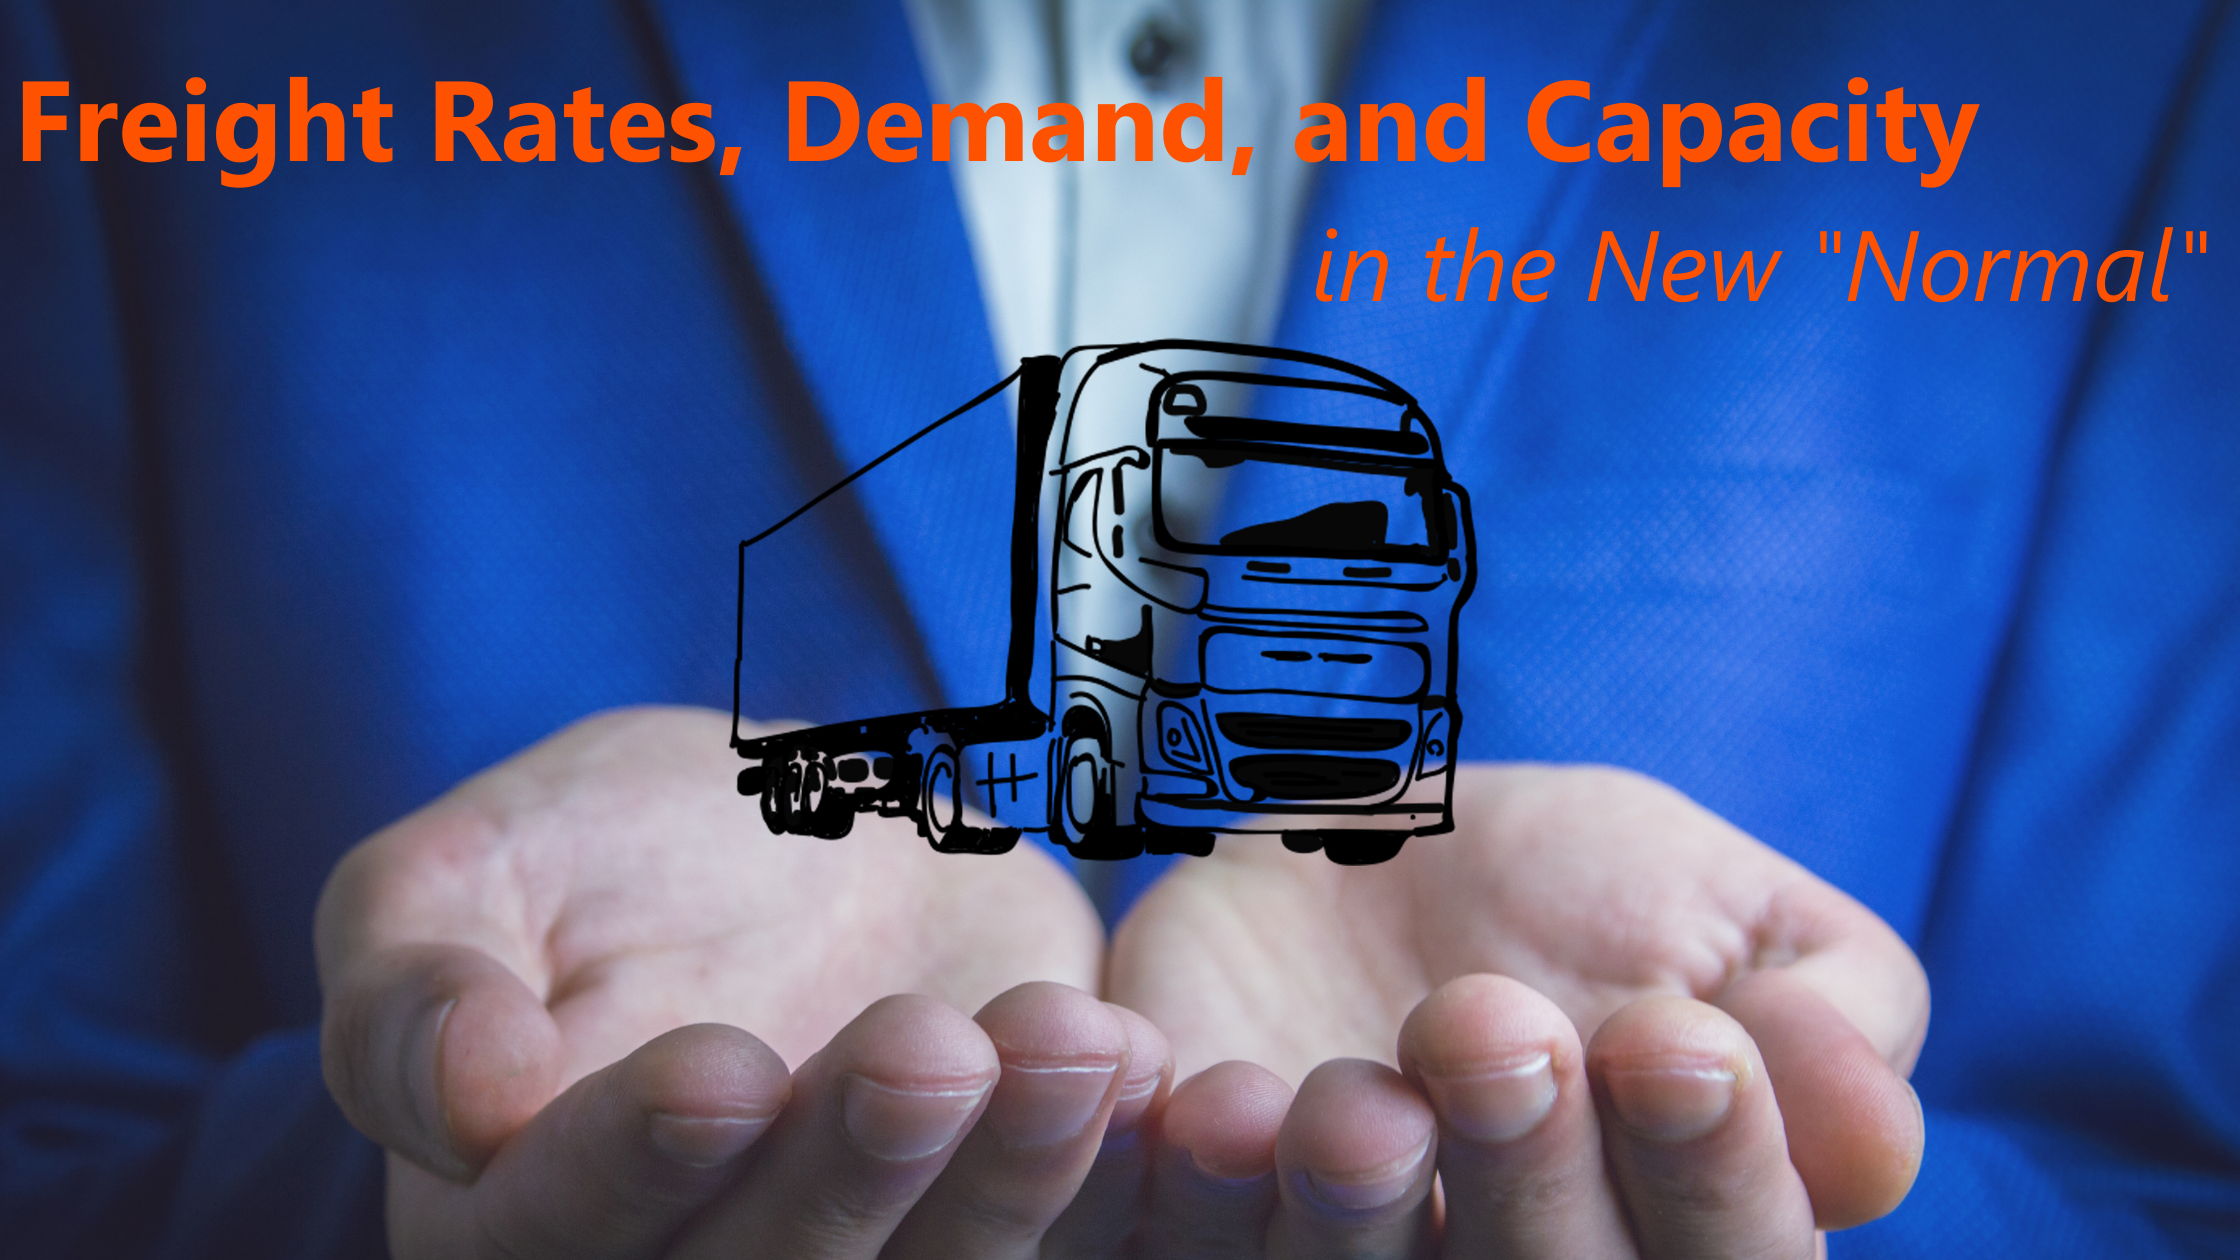 Freight Rates, Demand, and Capacity in the New Normal